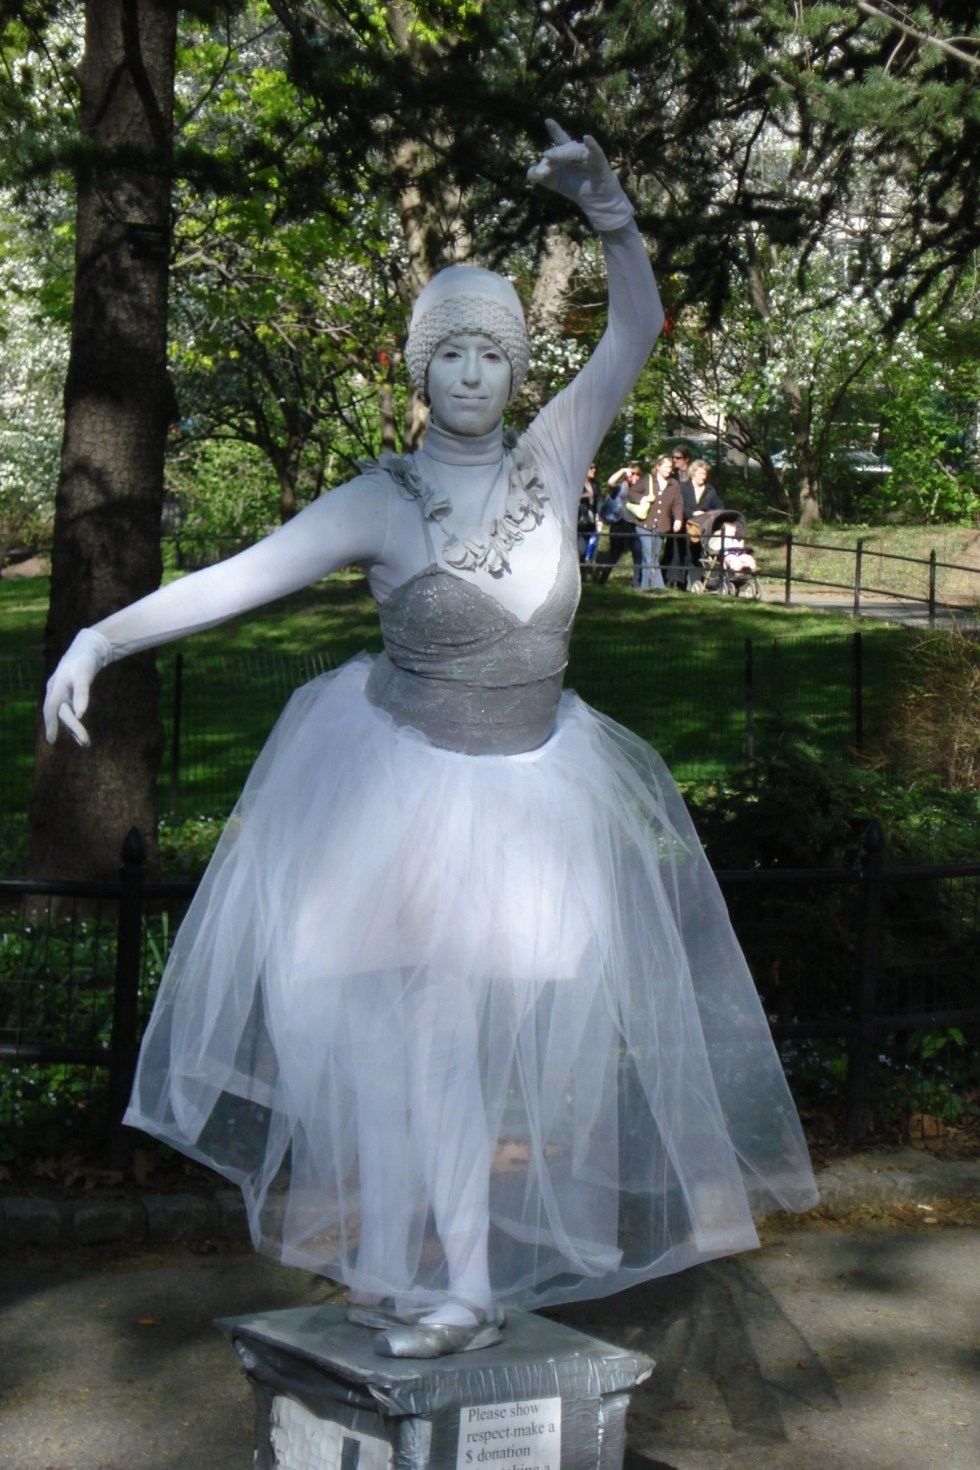 Woman imitating a statue, painted in silver, wearing a silver bodice, white hat and a white tutu with her arms raised gracefully in a ballet pose